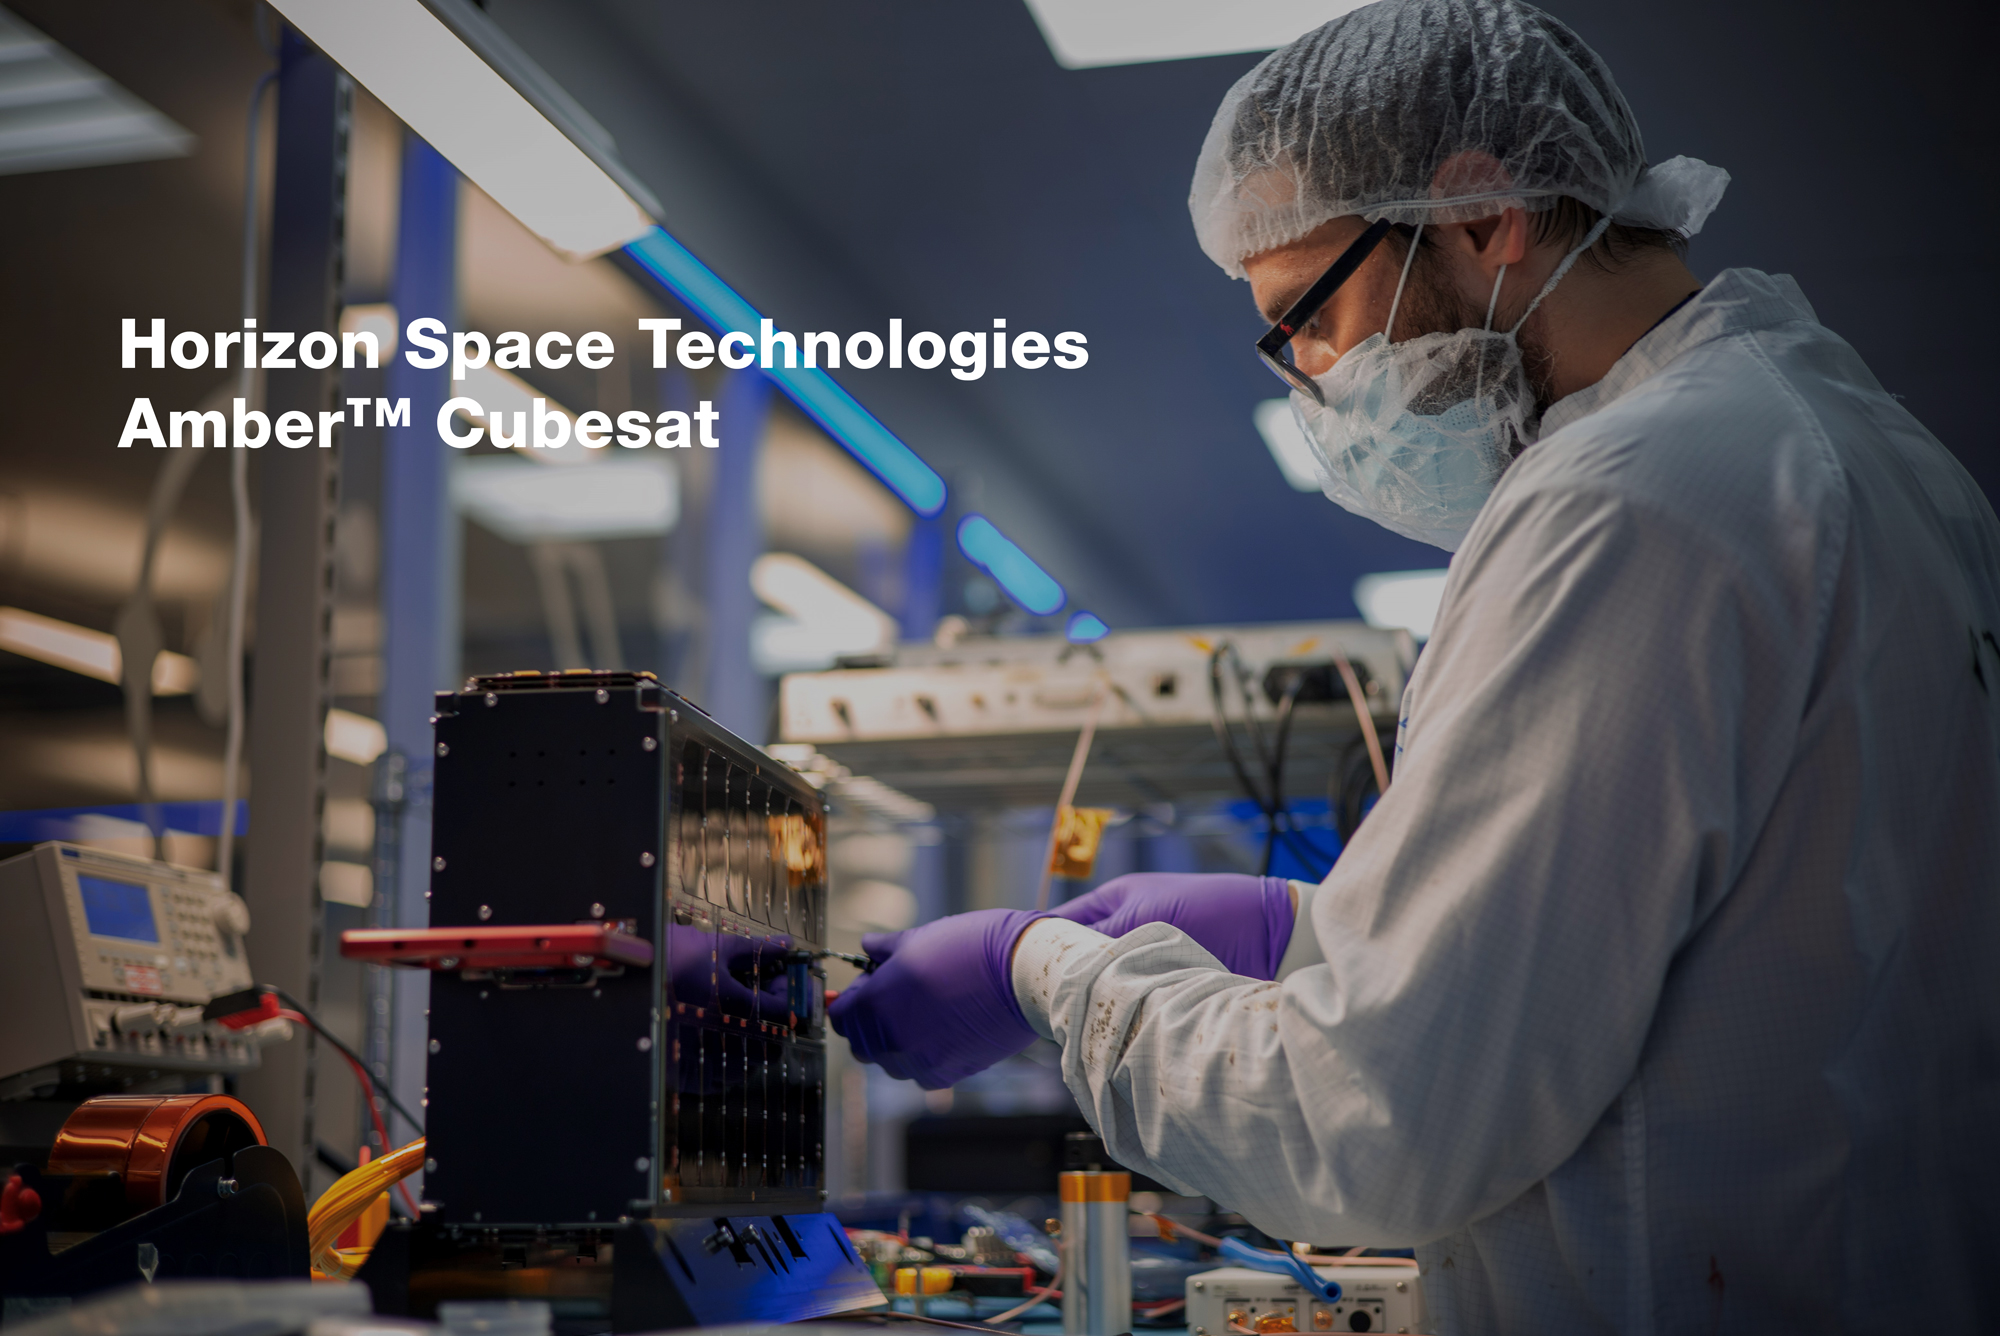 Horizon Space Technologies' Amber CubeSat constellation dedicated to delivering Maritime Domain Awareness